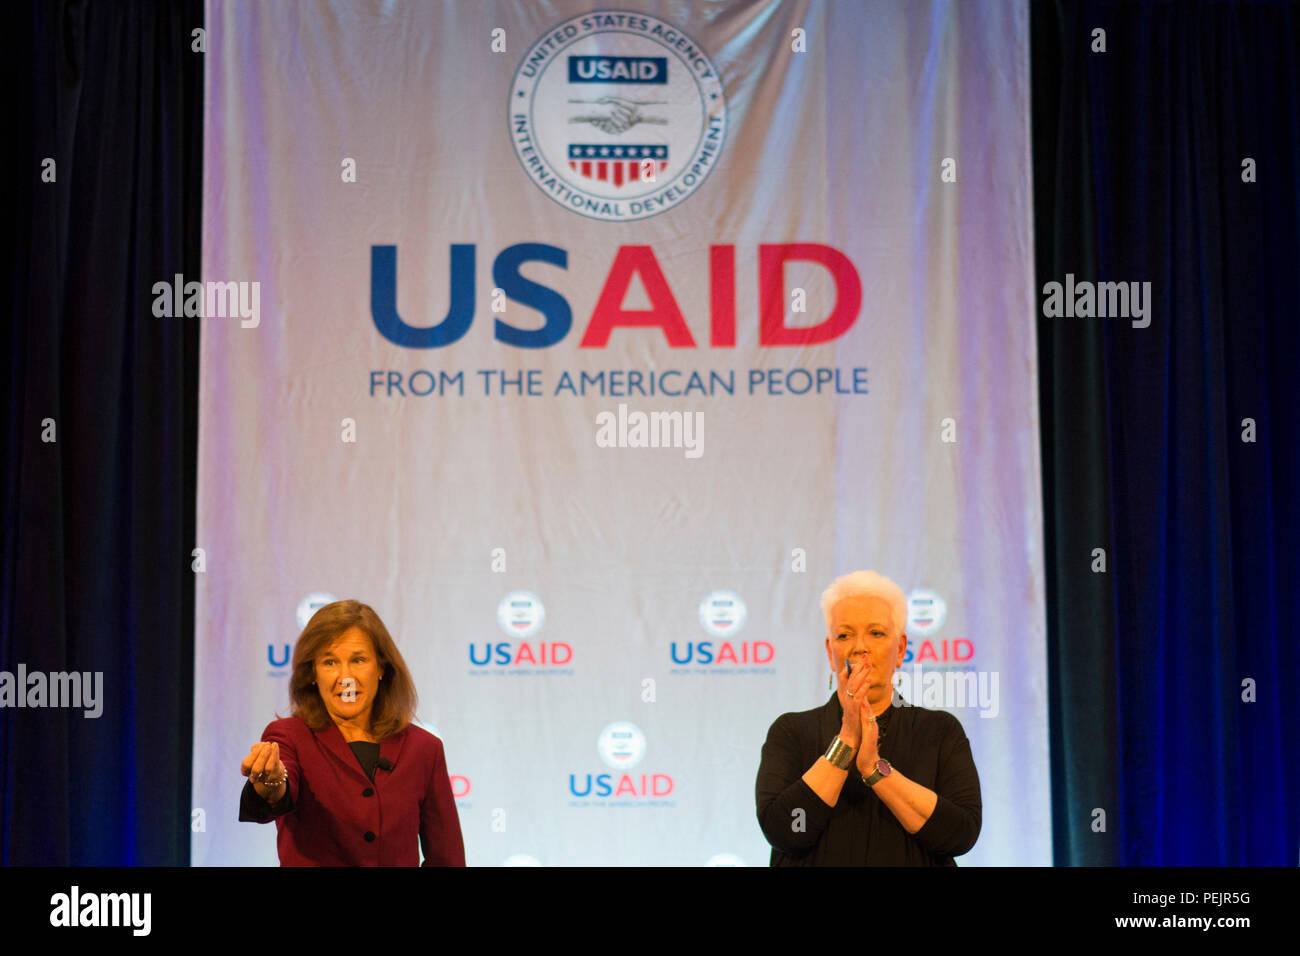 U.S. Agency for International Development's new administrator, Gayle Smith, and Senior Foreign Service Officer, Susan Reichle, take questions from USAID staff at a town hall meeting in Washington, Dec. 10, 2015. Smith is the 17th administrator for USAID. (Photo by Mark Burrell/USAID) - Stock Image